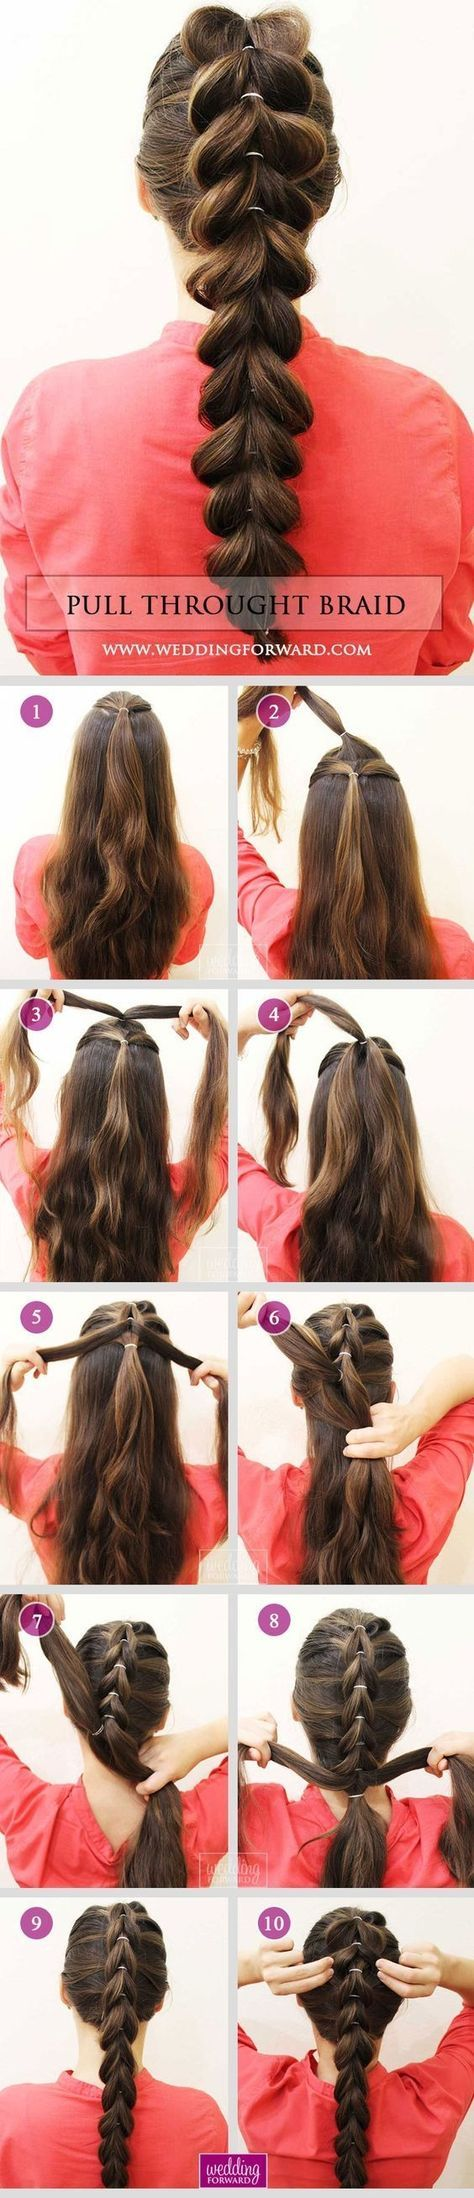 36 Braided Wedding Hair Ideas You Will Love Stylish Pull Throught Braid at home is very easy! S ...